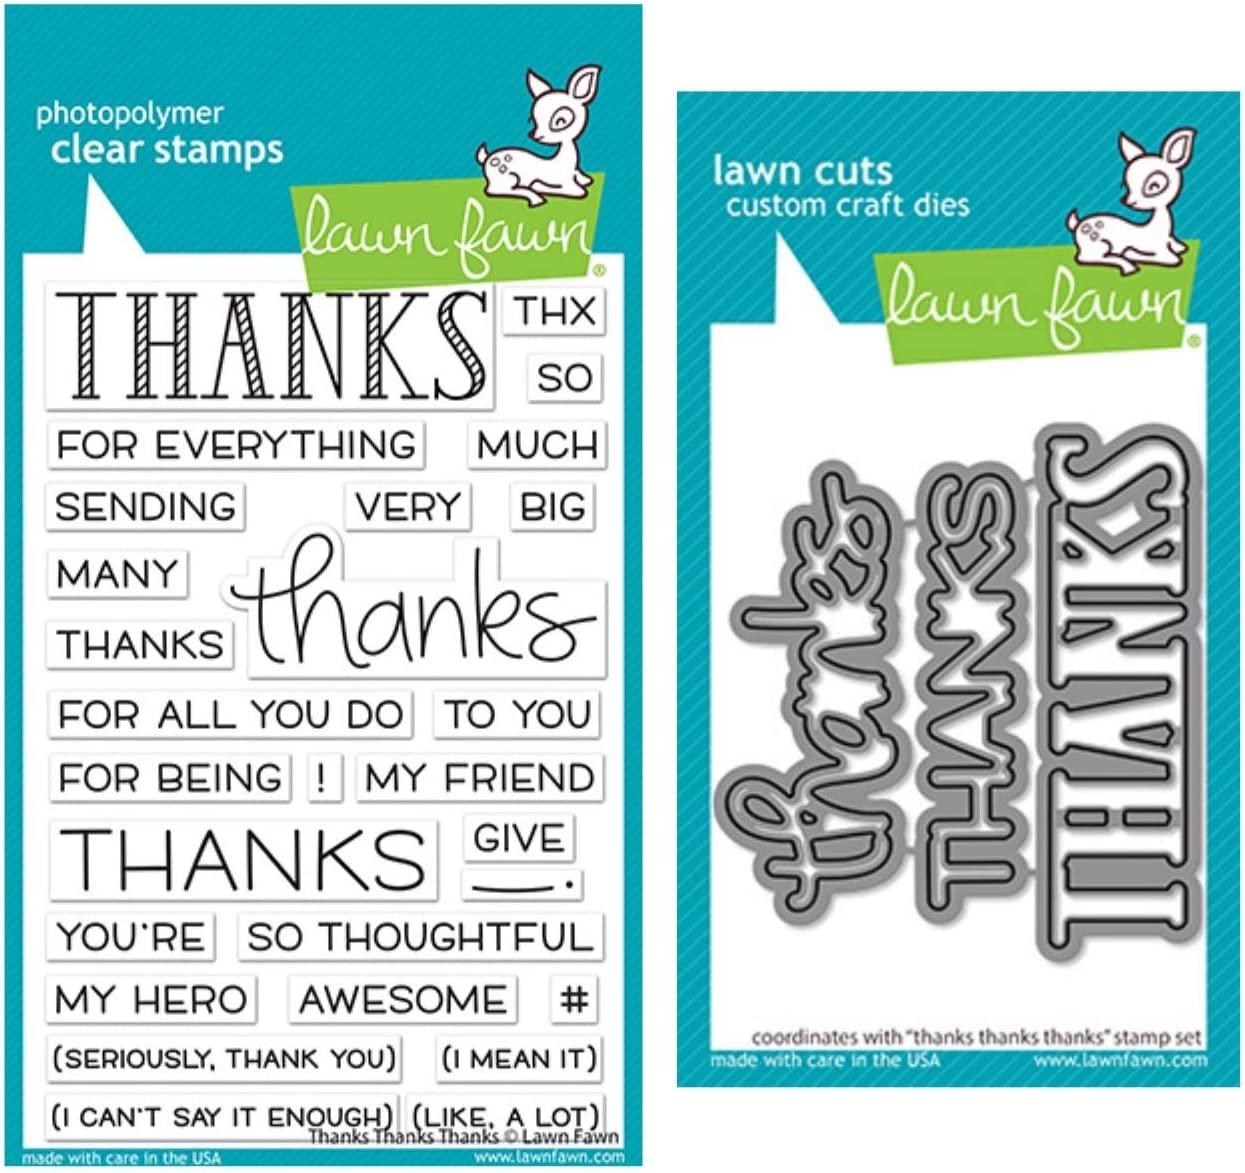 LF2405, LF2406 Lawn Fawn Thanks Thanks Thanks 4x6 Clear Stamp Set and Coordinating Dies Bundle of 2 Items